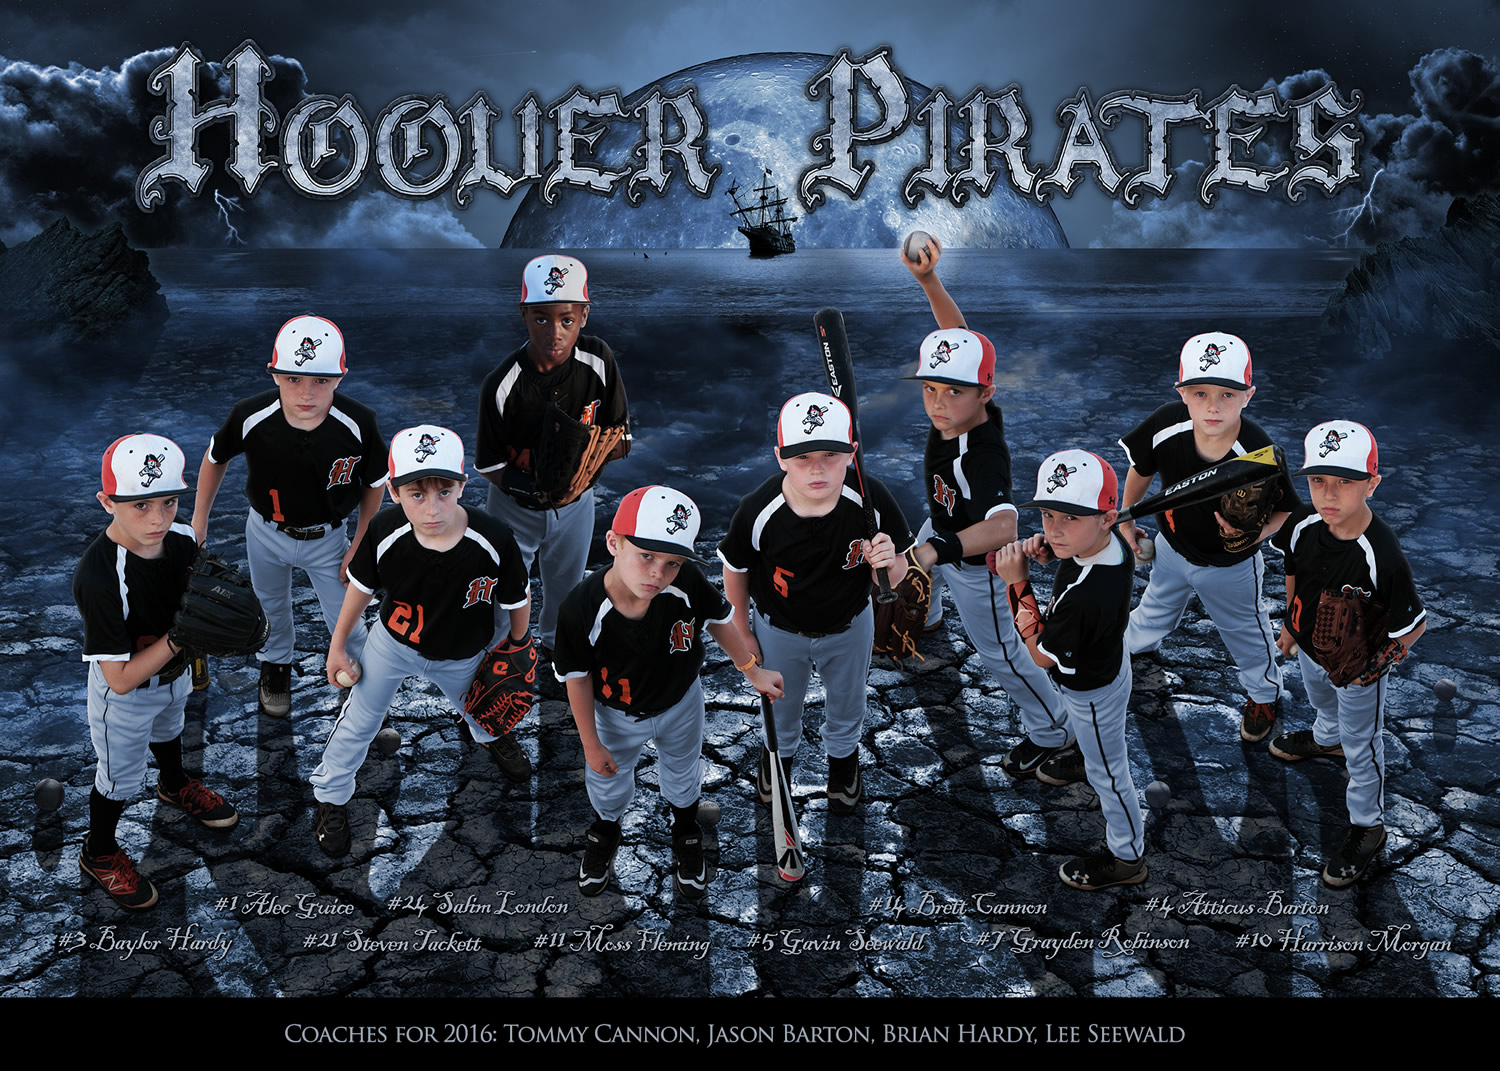 Hoover Pirates 2016